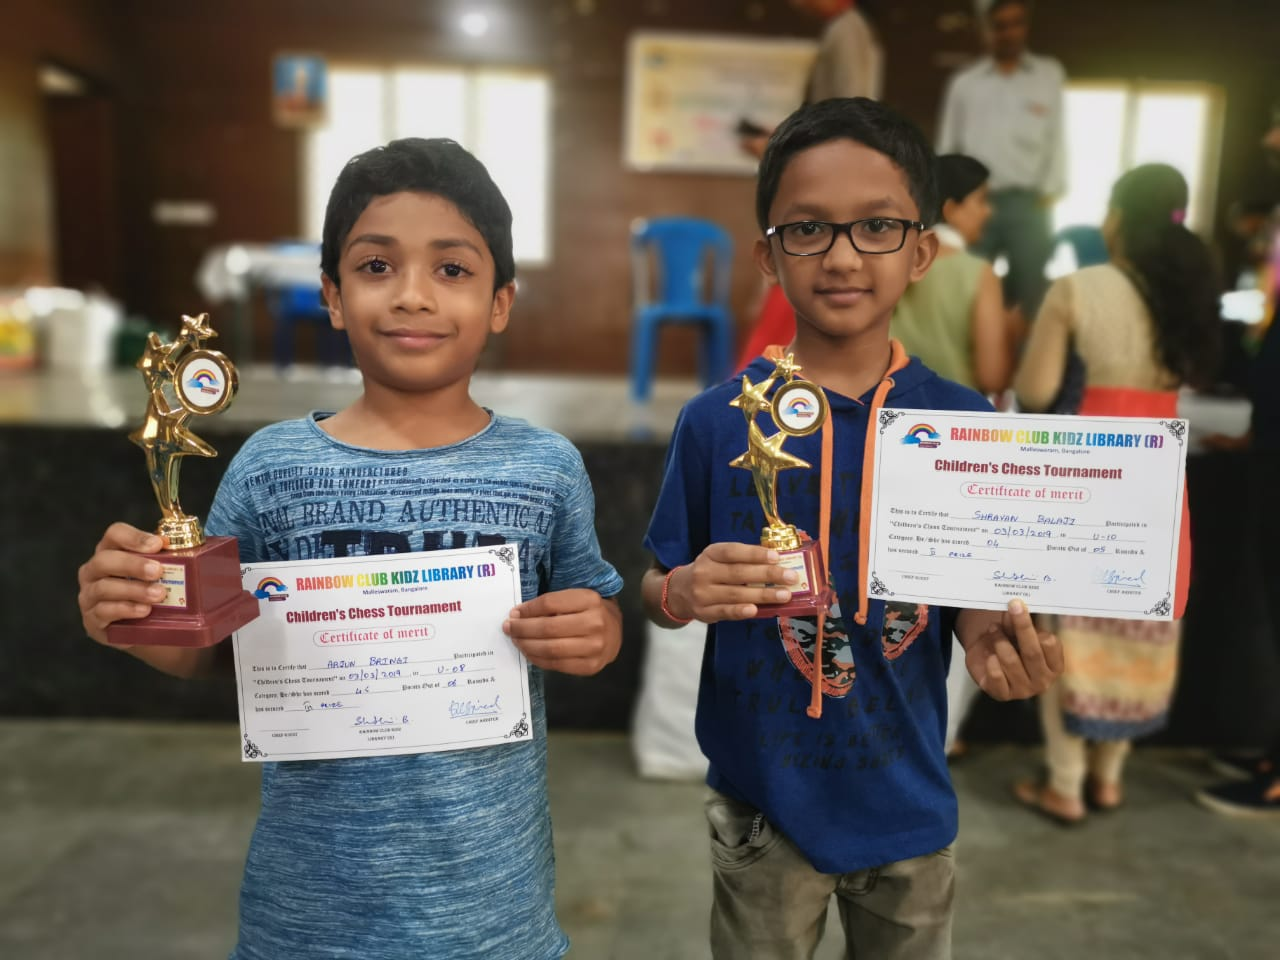 Congratulations to Arjun & Shravan for securing 2nd & 3rd place in their respective categories of the Rainbow Kidz Chess Tournament held in Malleswaram, Bangalore